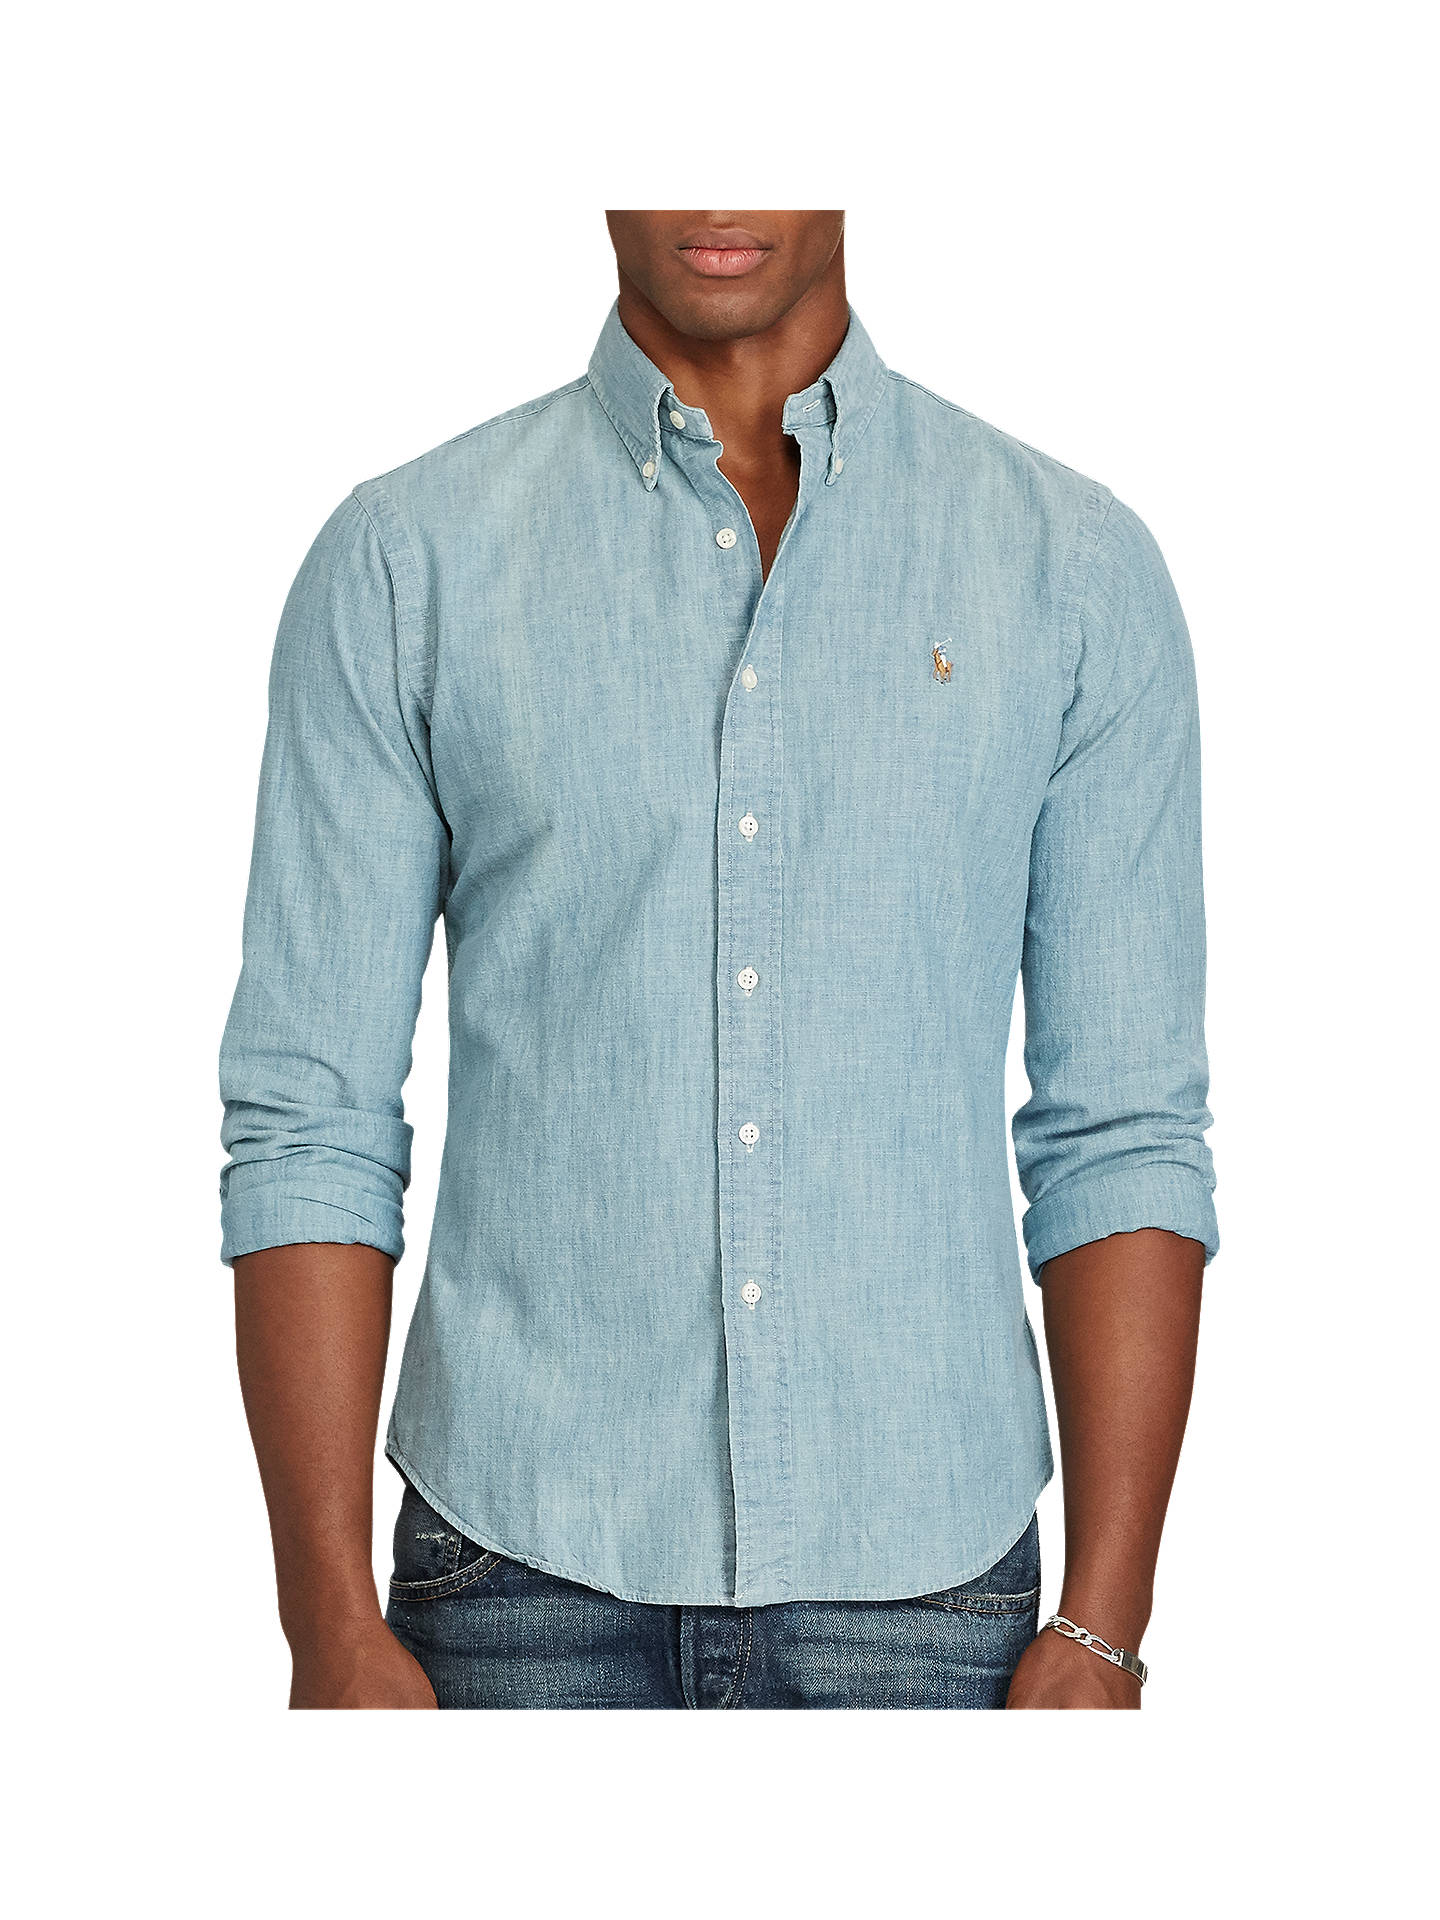 45e7f7cd9 Buy Polo Ralph Lauren Chambray Slim Fit Shirt, Chambray, L Online at  johnlewis.